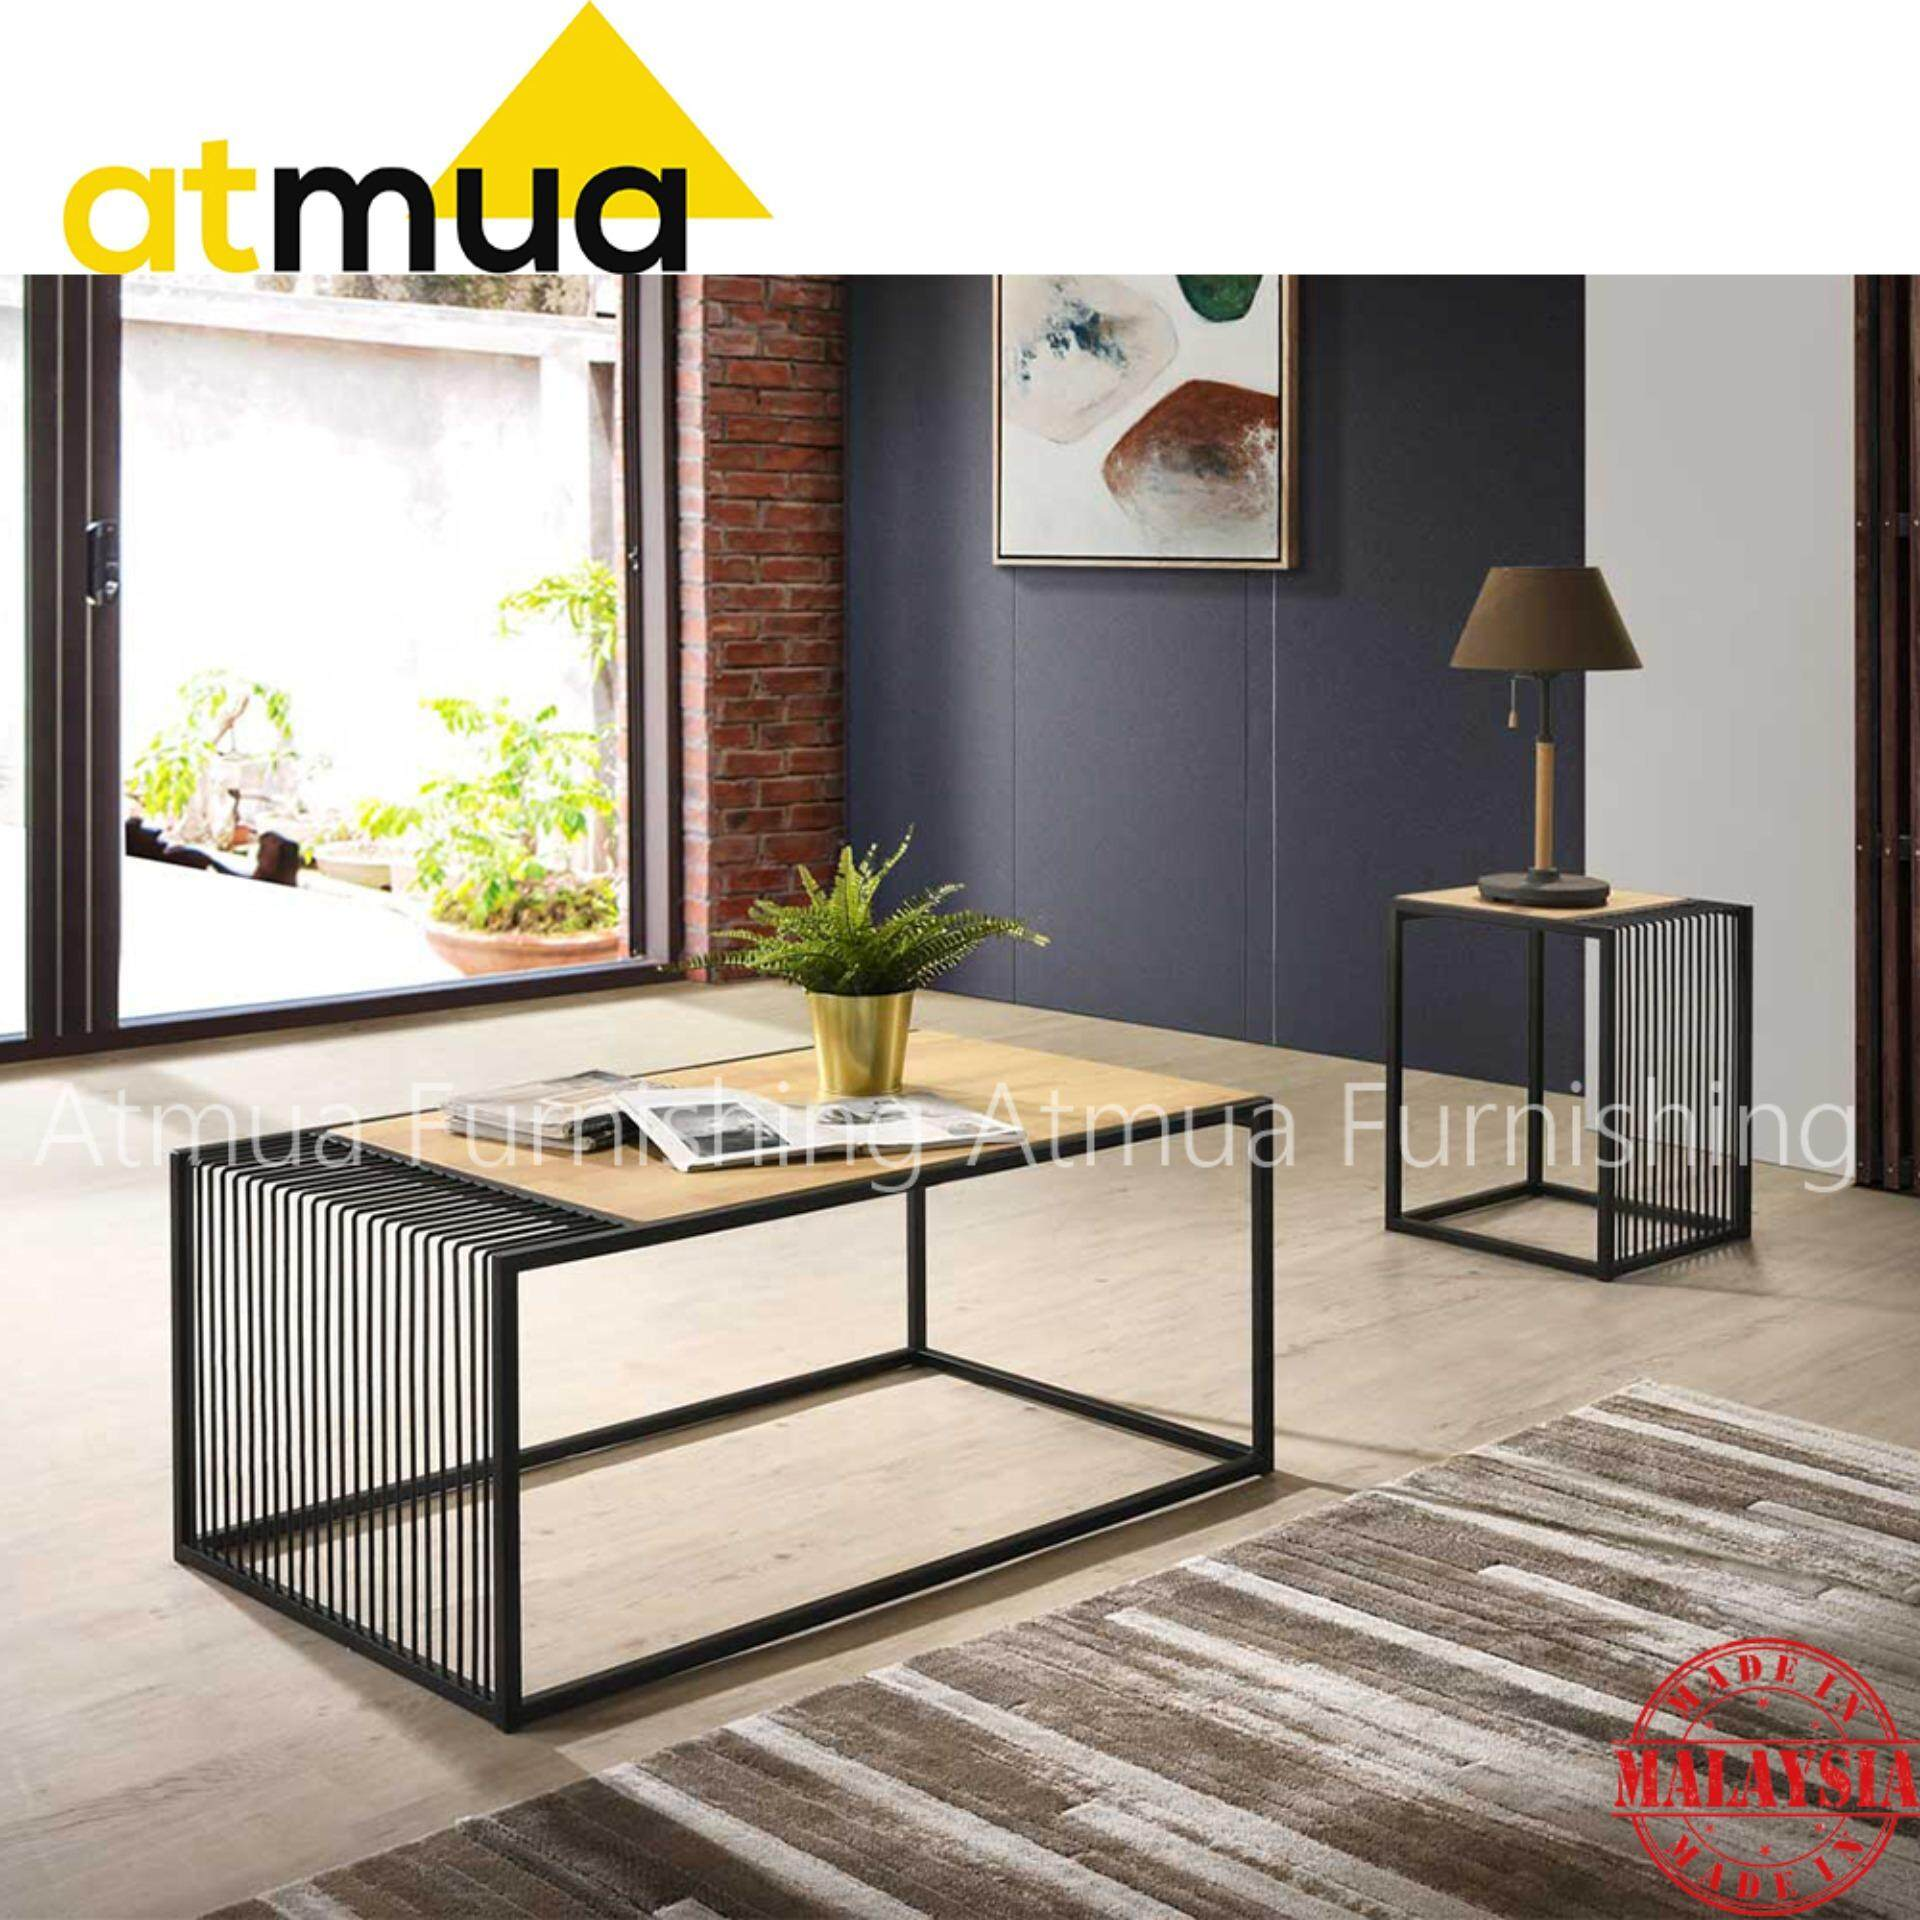 Atmua Wander Living Room Set 2in1 (Coffee Table + End Table) [Rubber Wood Top with Metal Leg]